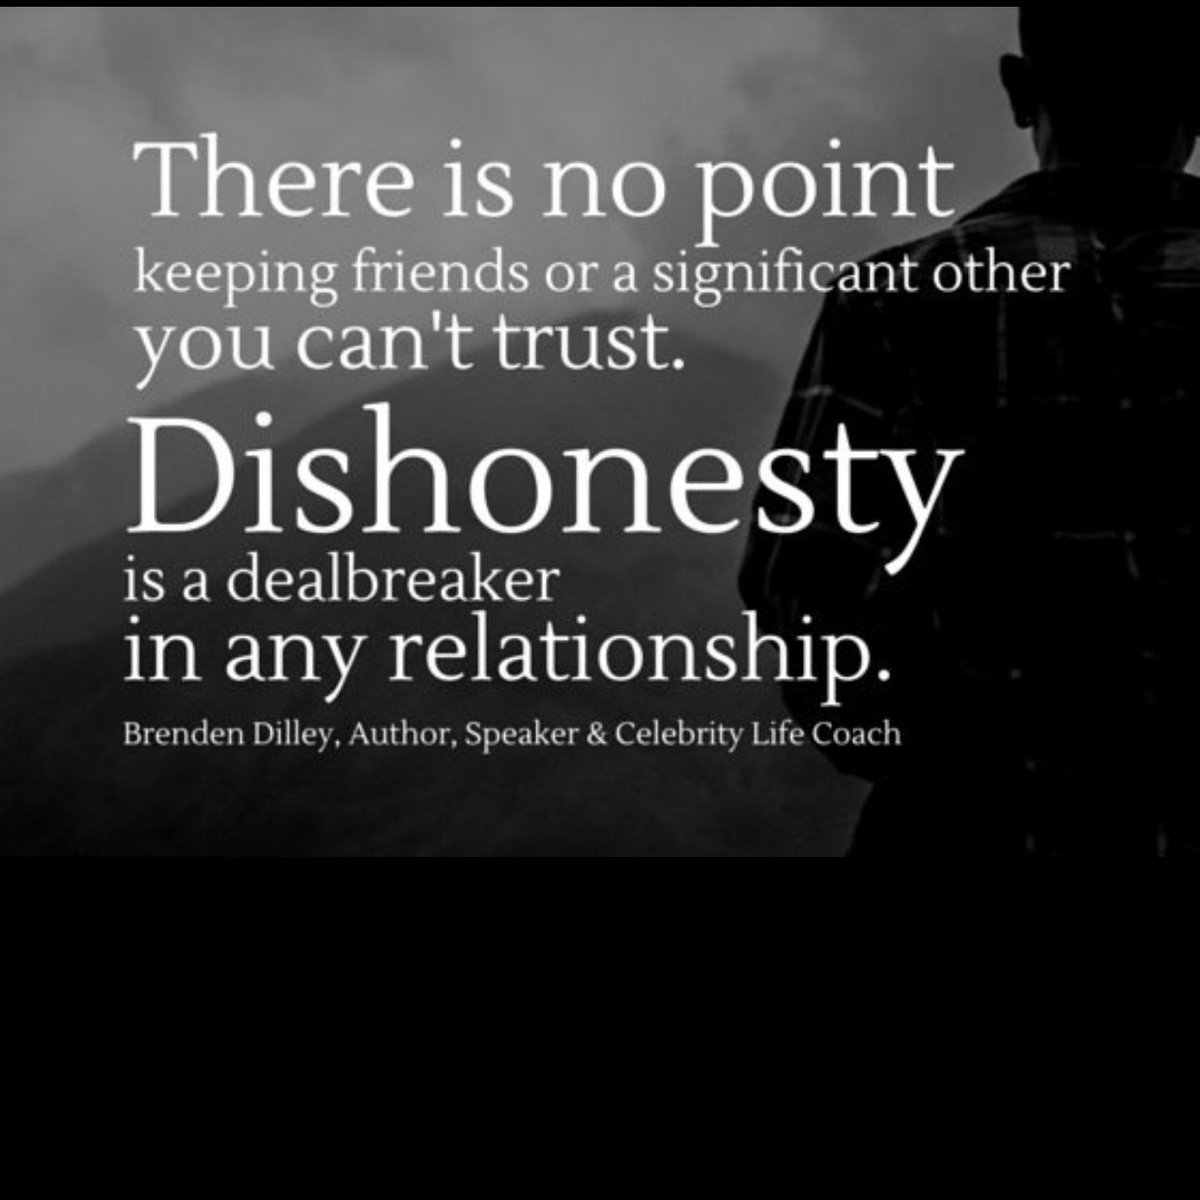 Dishonesty is a deal breaker<br>http://pic.twitter.com/YqpJhZeSmC